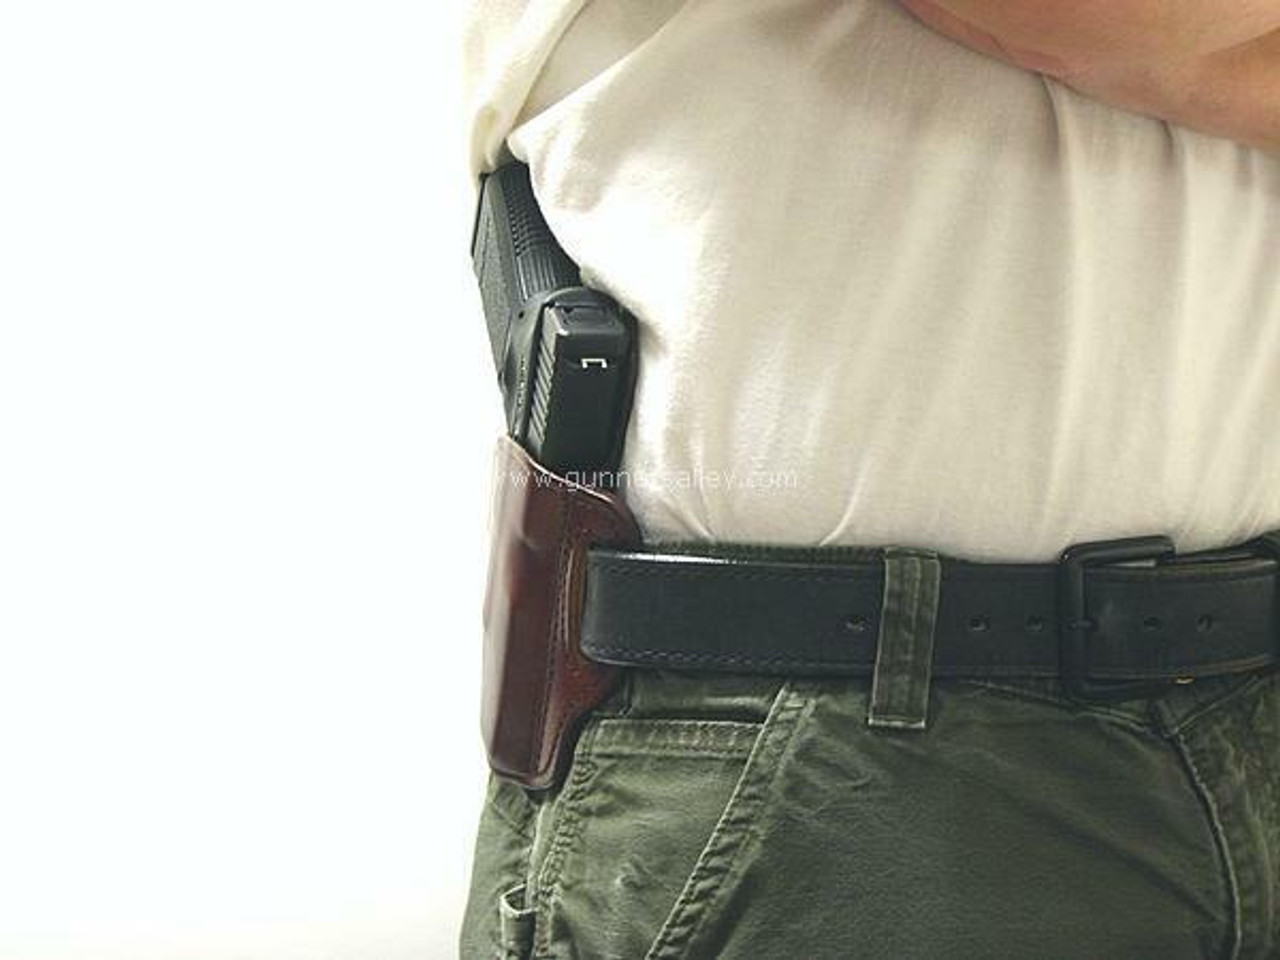 Profile View - RH Model - Shown on the Belt with a Glock 19 for Demonstration Purposes - Right Hand